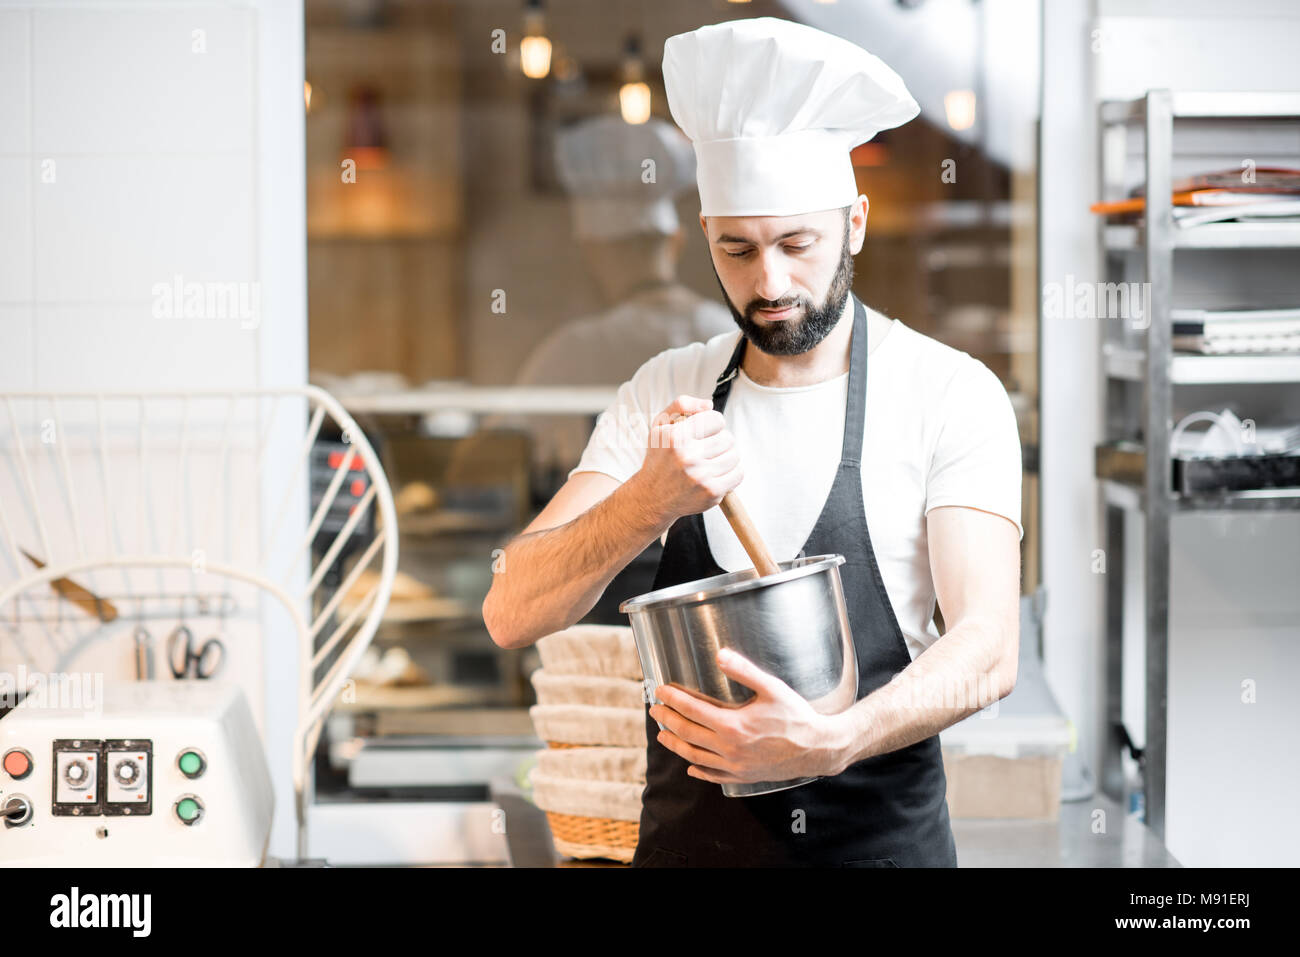 Confectioner working at the bakery - Stock Image